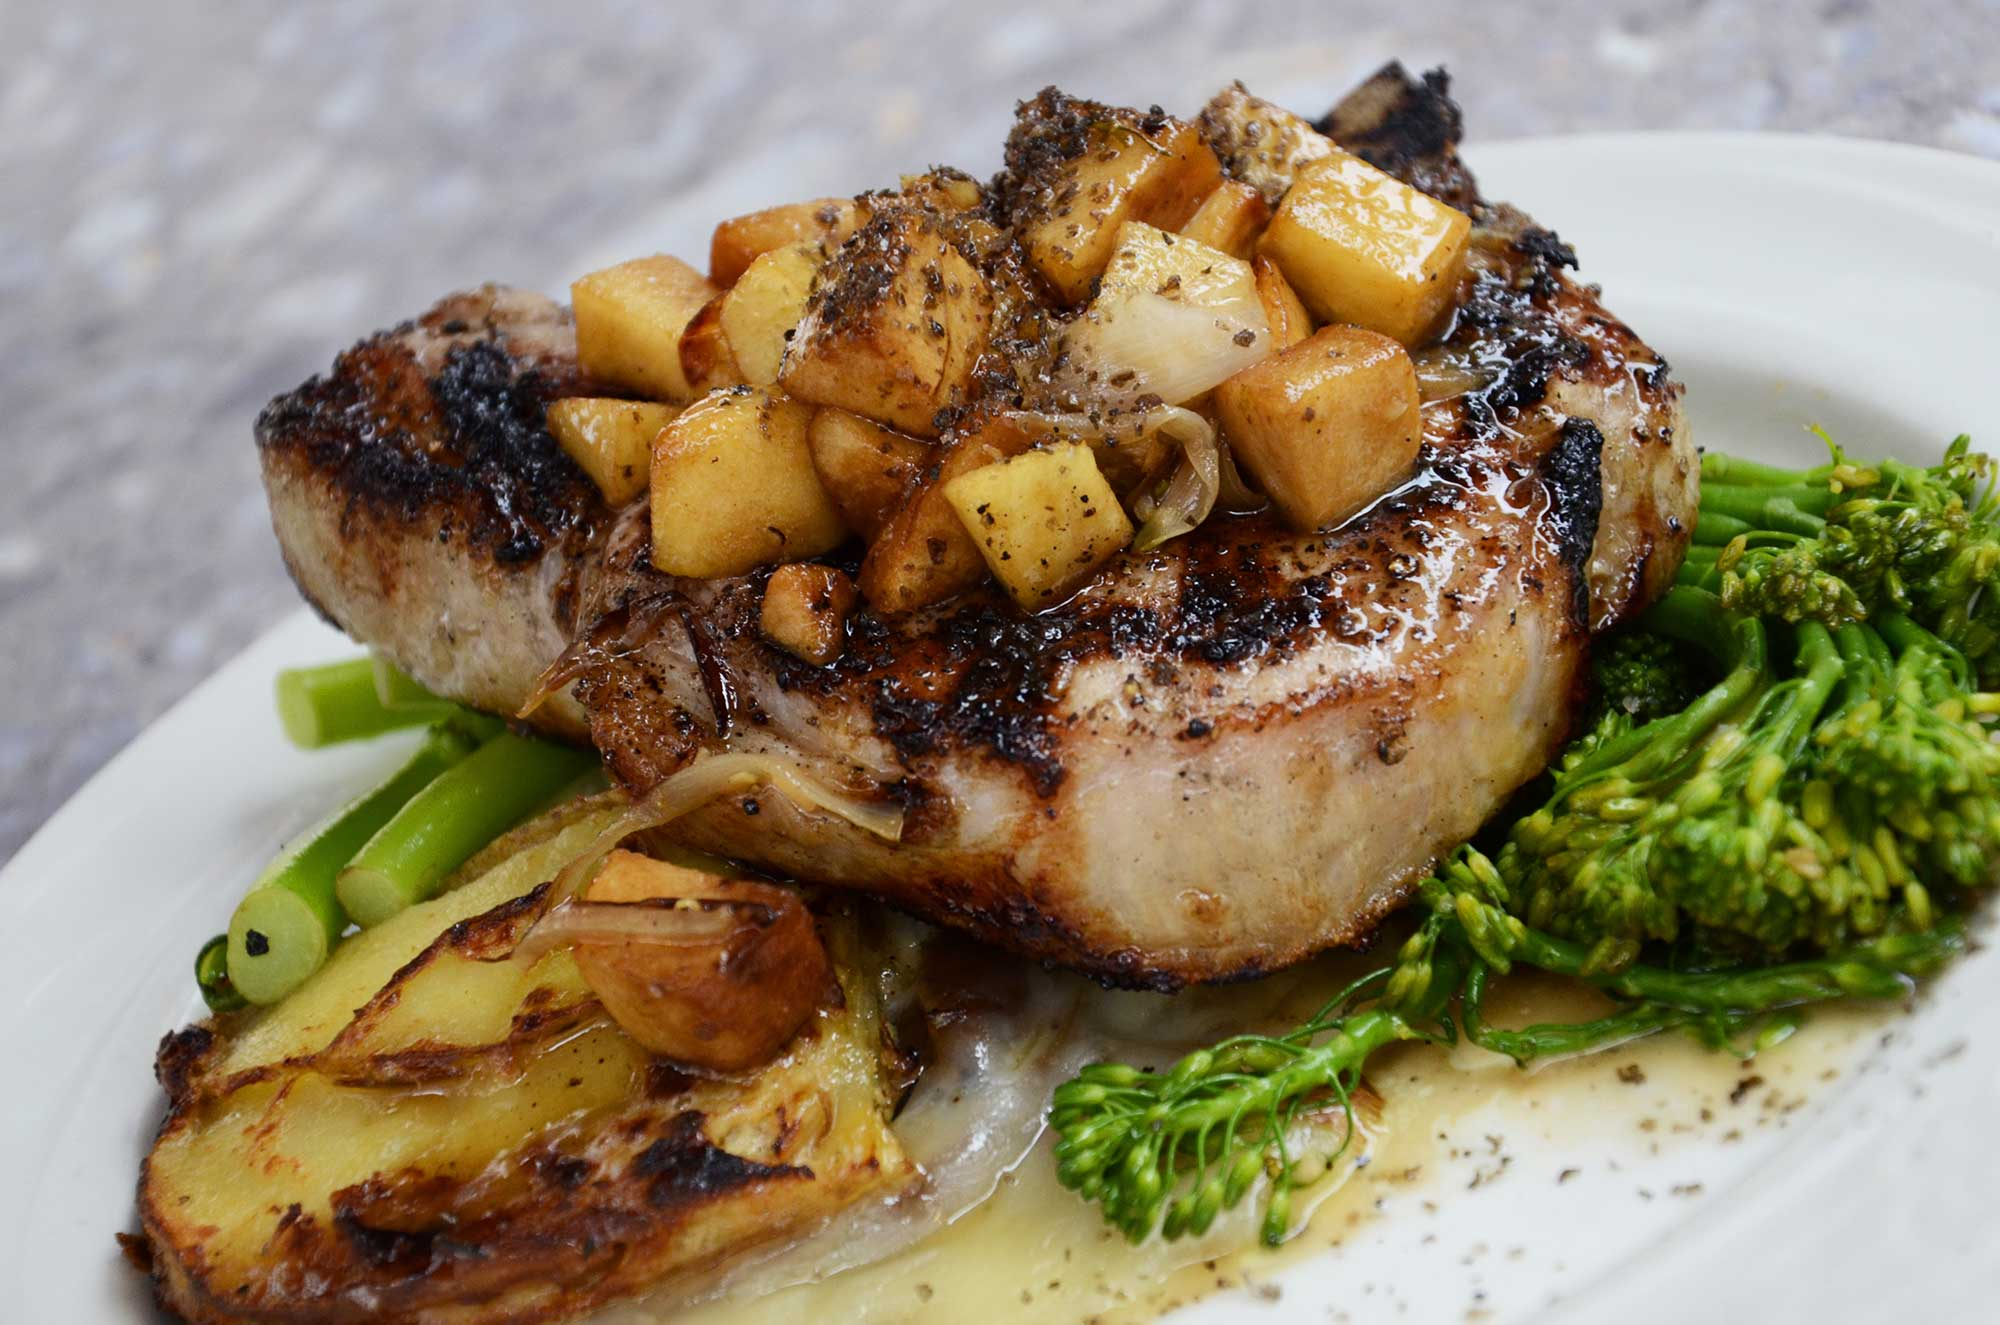 Marios-Italian-Deli Pork Chops with Apple Compote